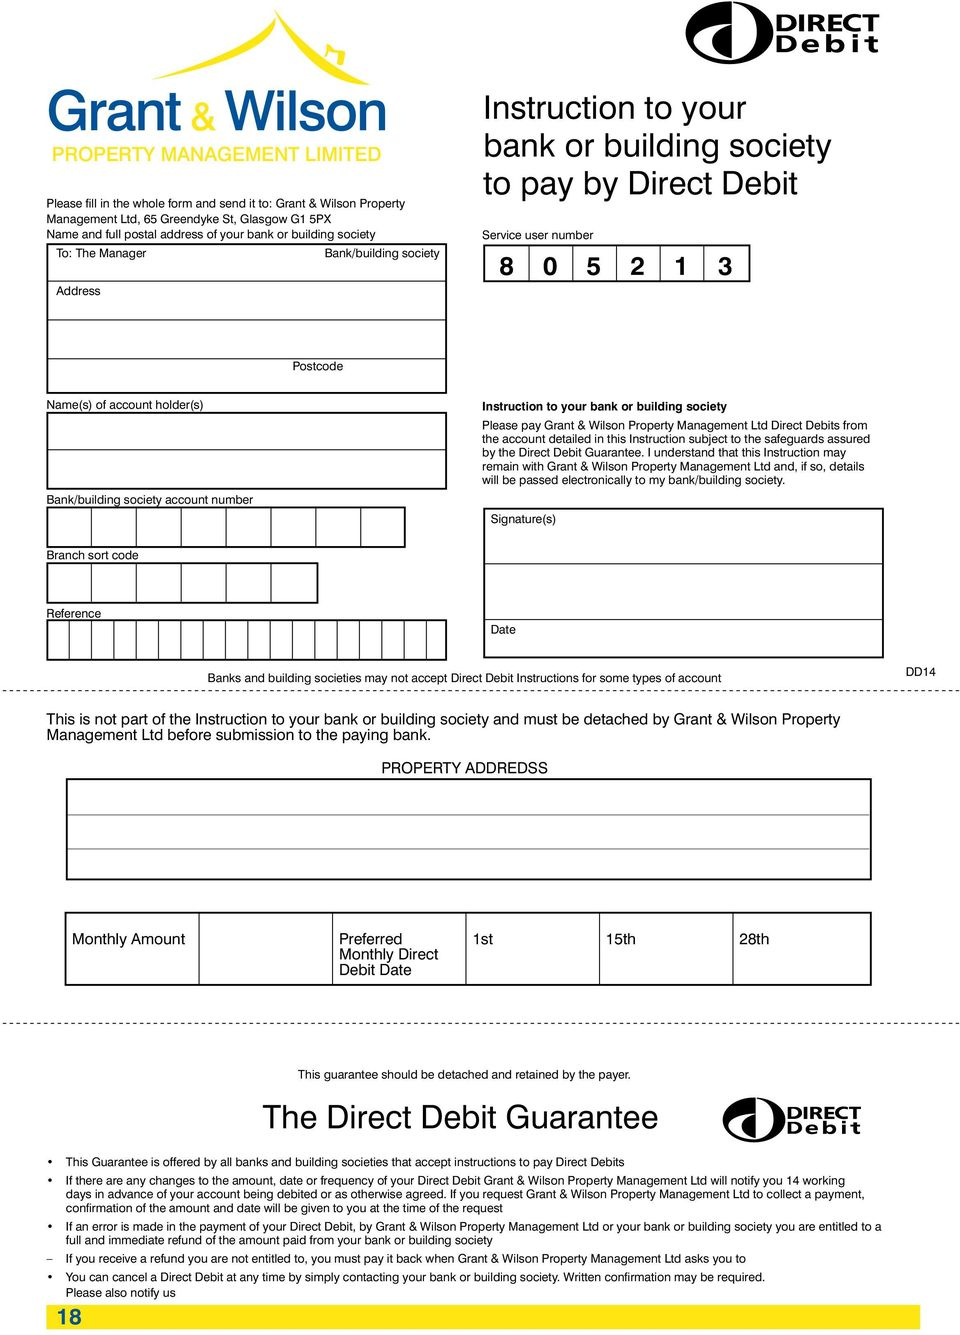 Instruction to your bank or building society Please pay Property Management Ltd Direct Debits from the account detailed in this Instruction subject to the safeguards assured by the Direct Debit